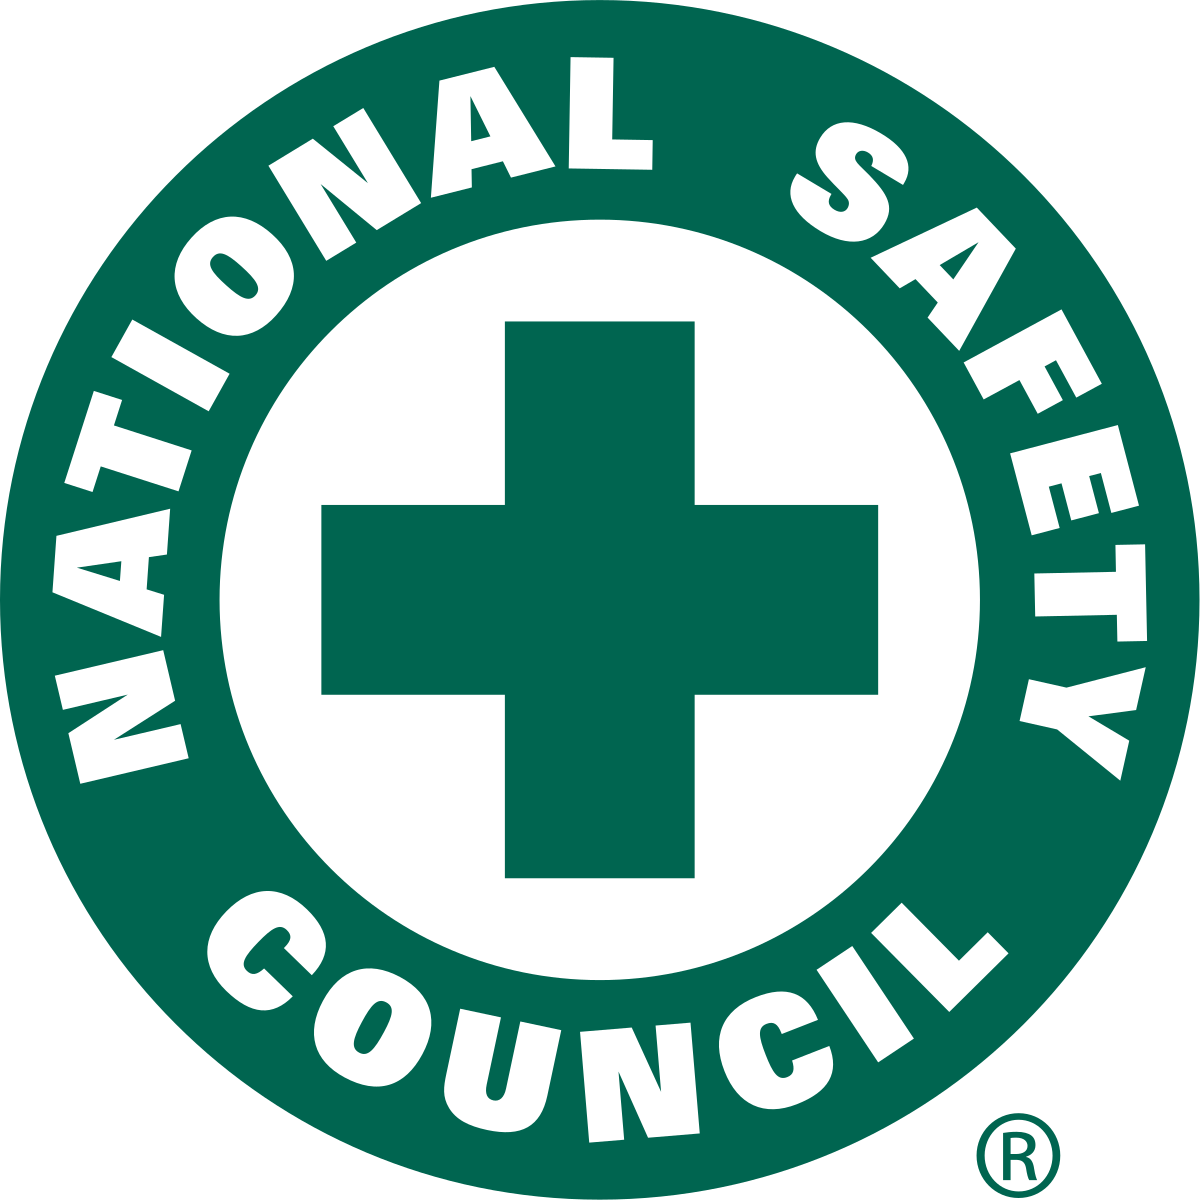 Safety vector safe driving. National council wikipedia